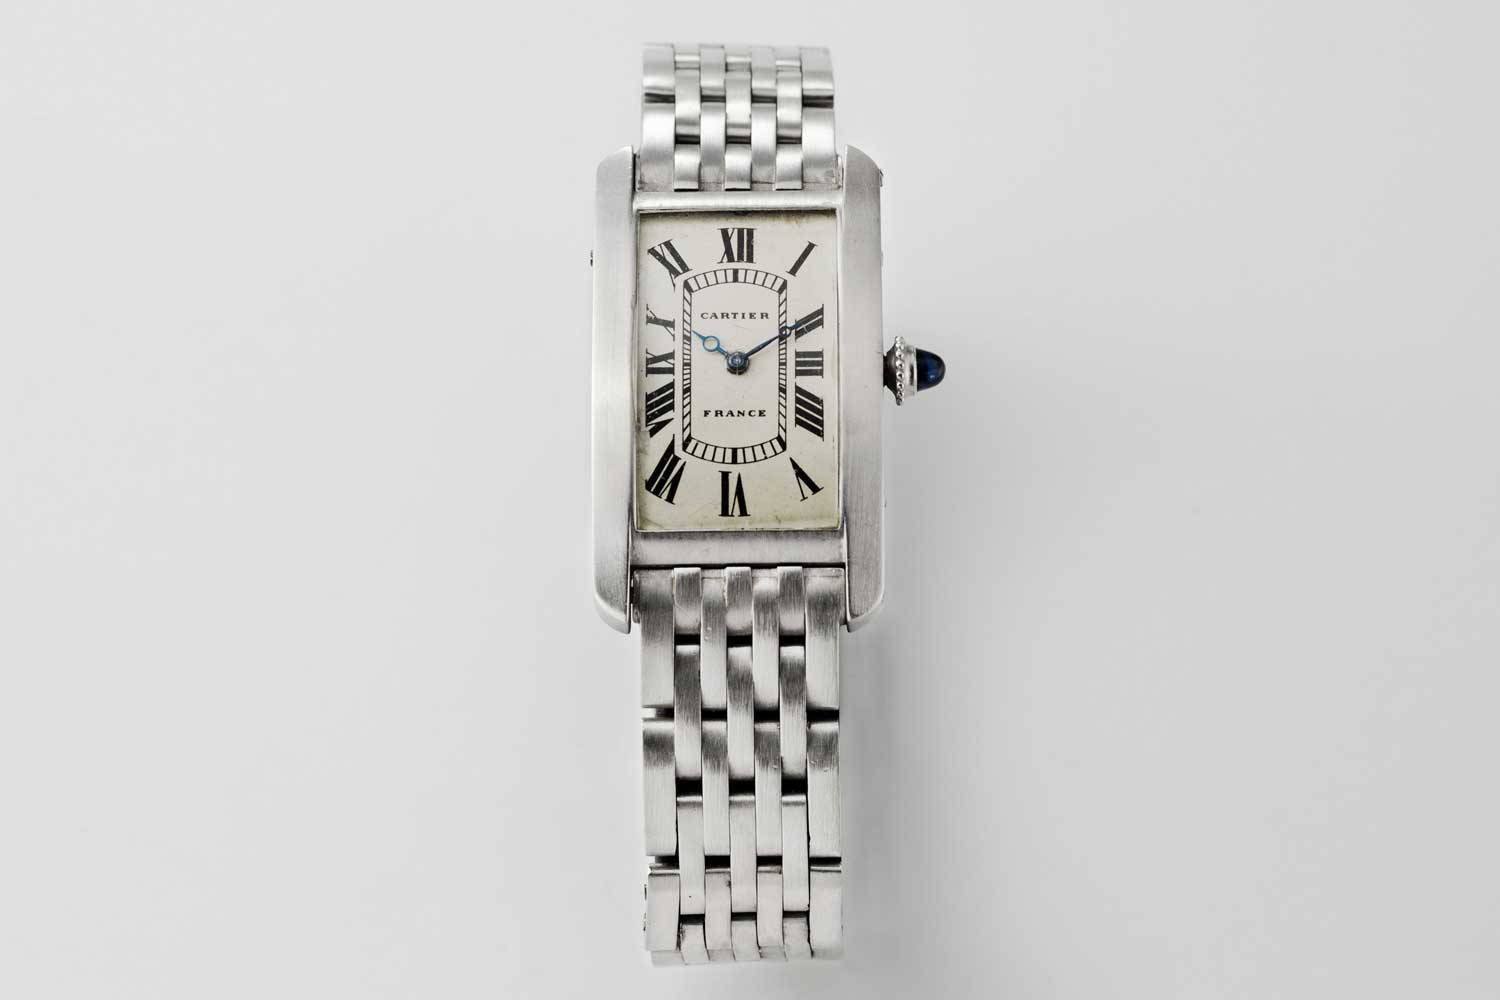 1930 Cartier Platinum Tank Cintrée made in France, medium size with original pt. 7-link bracelet; this particular example is from the private collection of Auro Montanari (©Revolution)